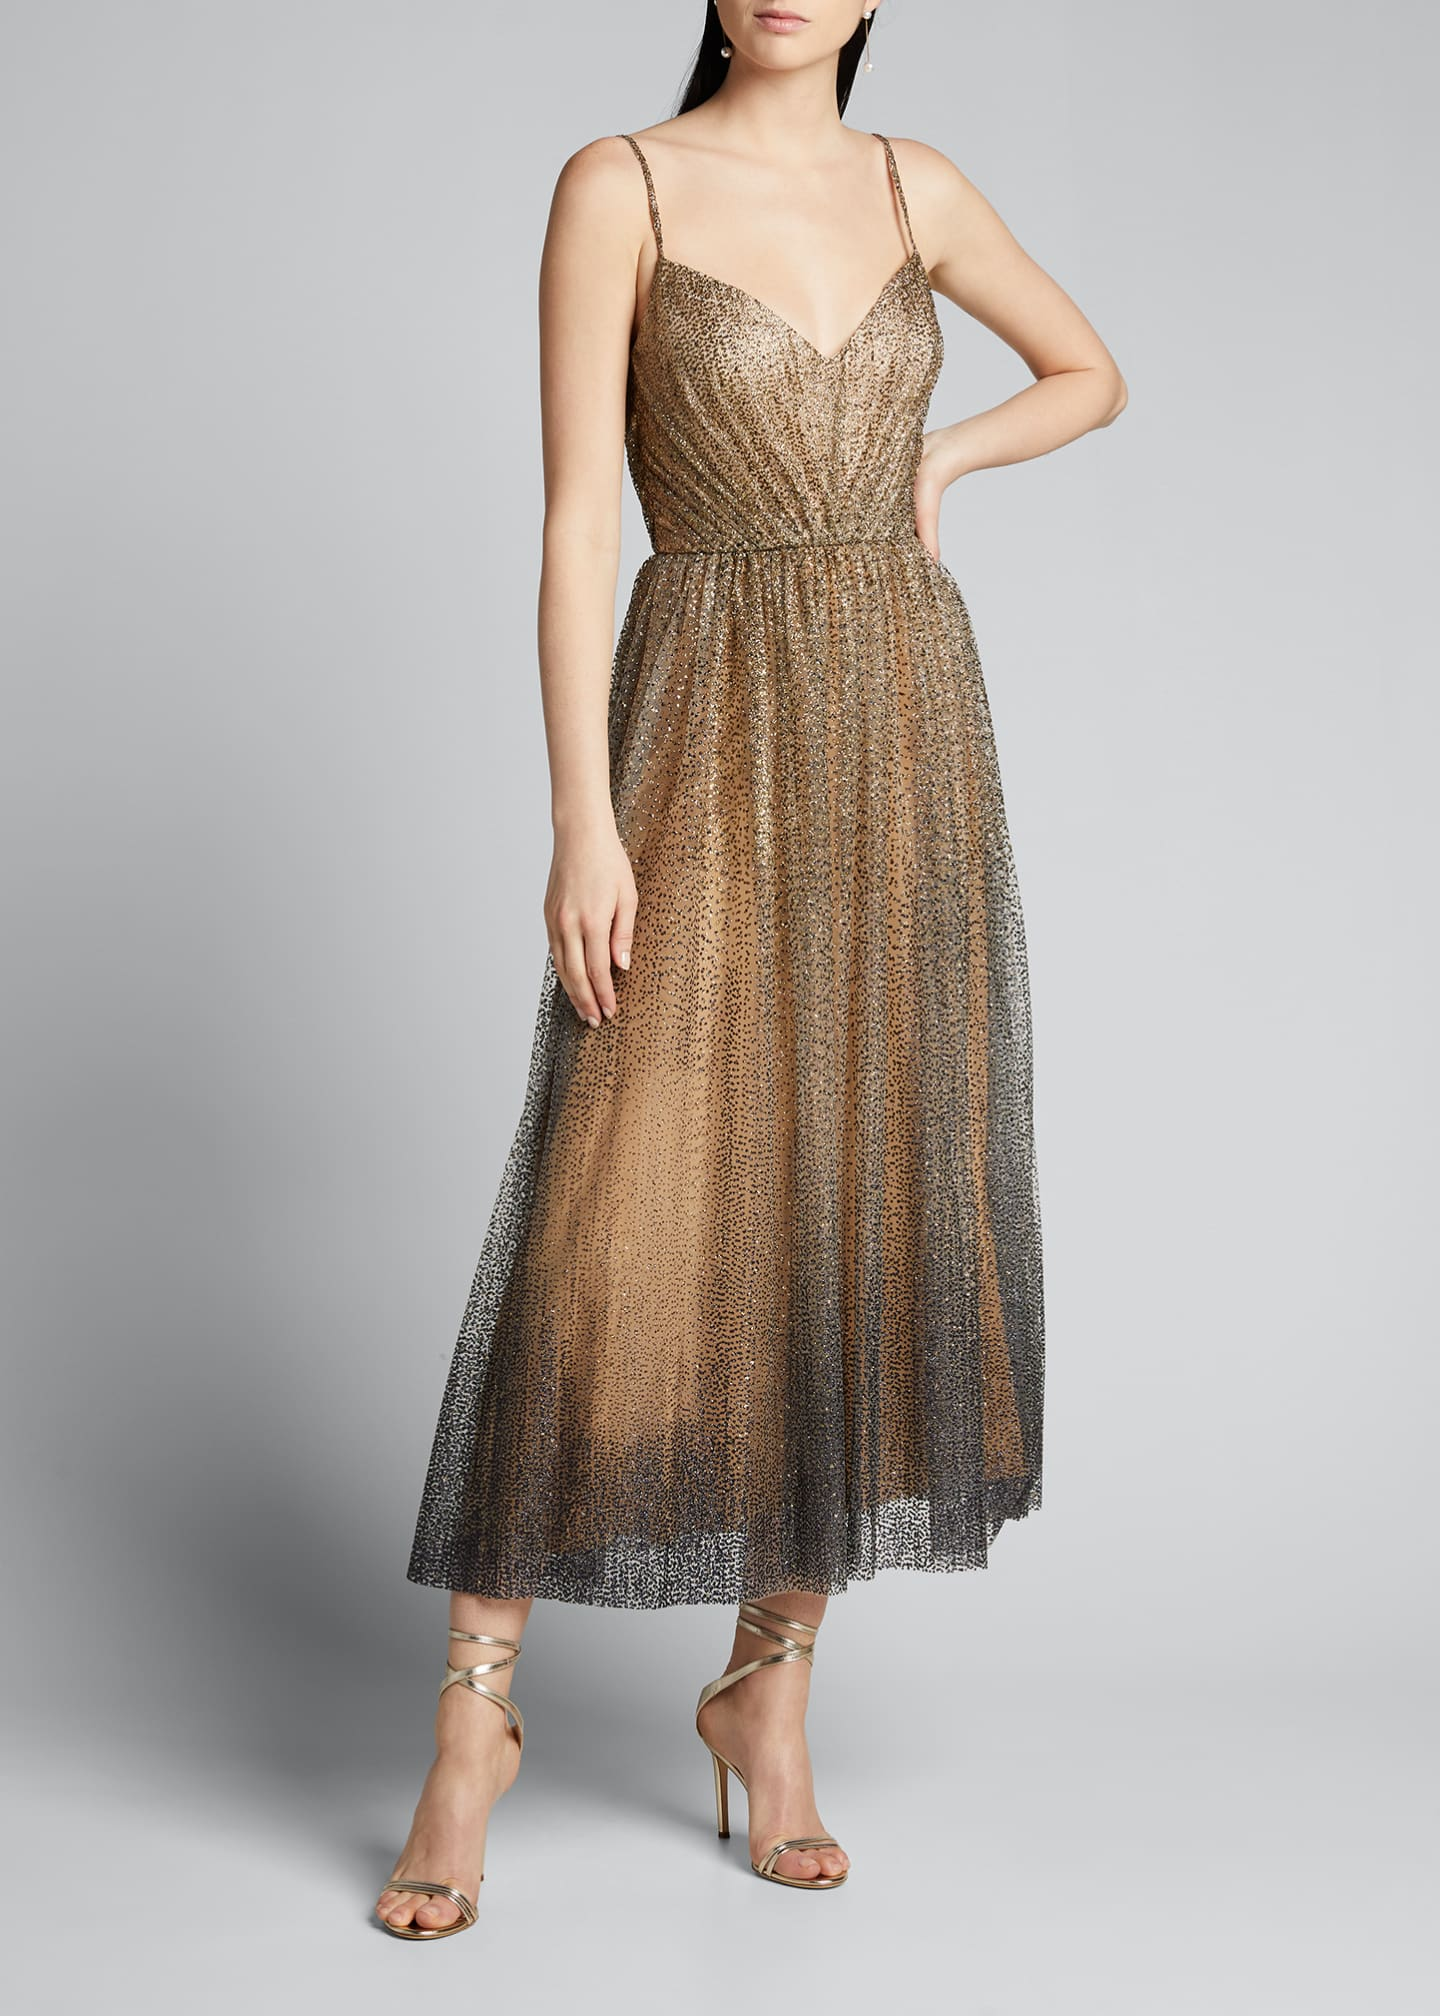 Glittered Tulle Tea-Length Cocktail Dress